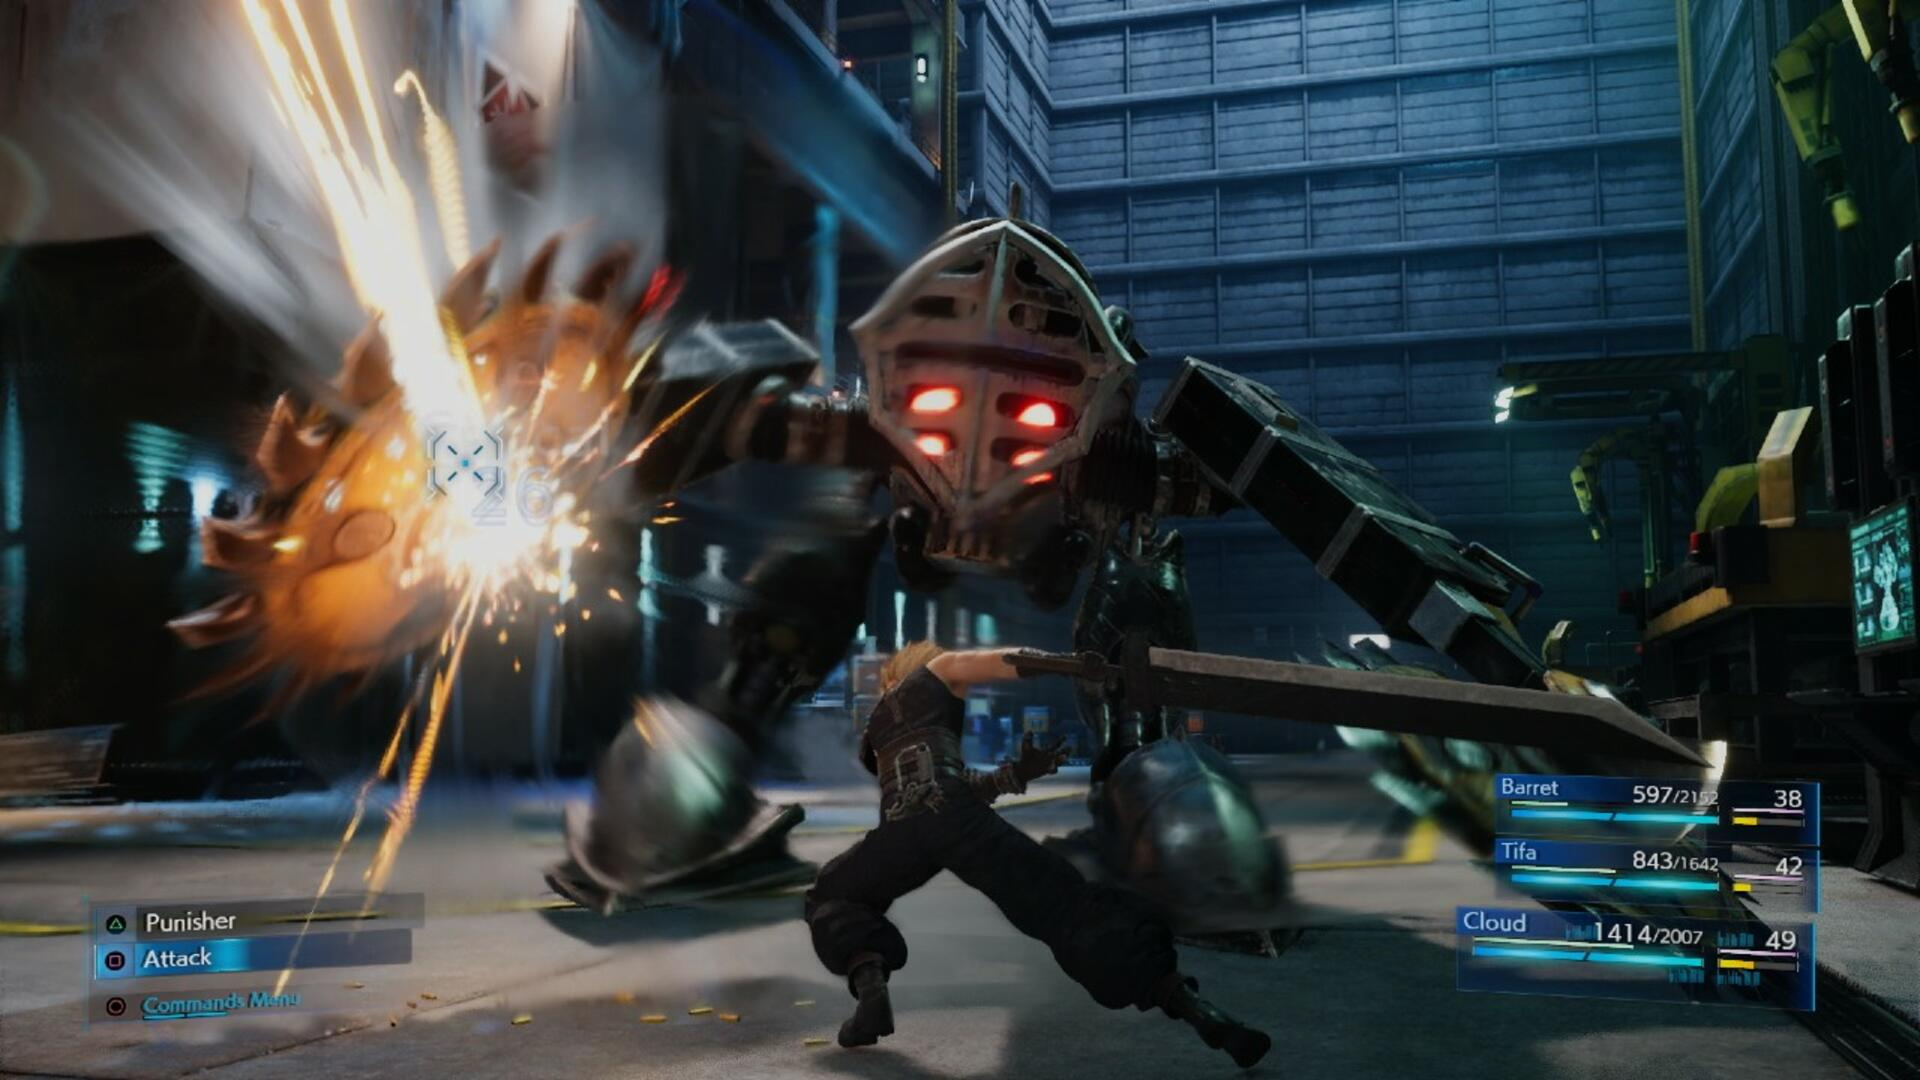 Final Fantasy 7 Remake Combat Details: What Sharp-Eyed Fans Have Found in the Trailer